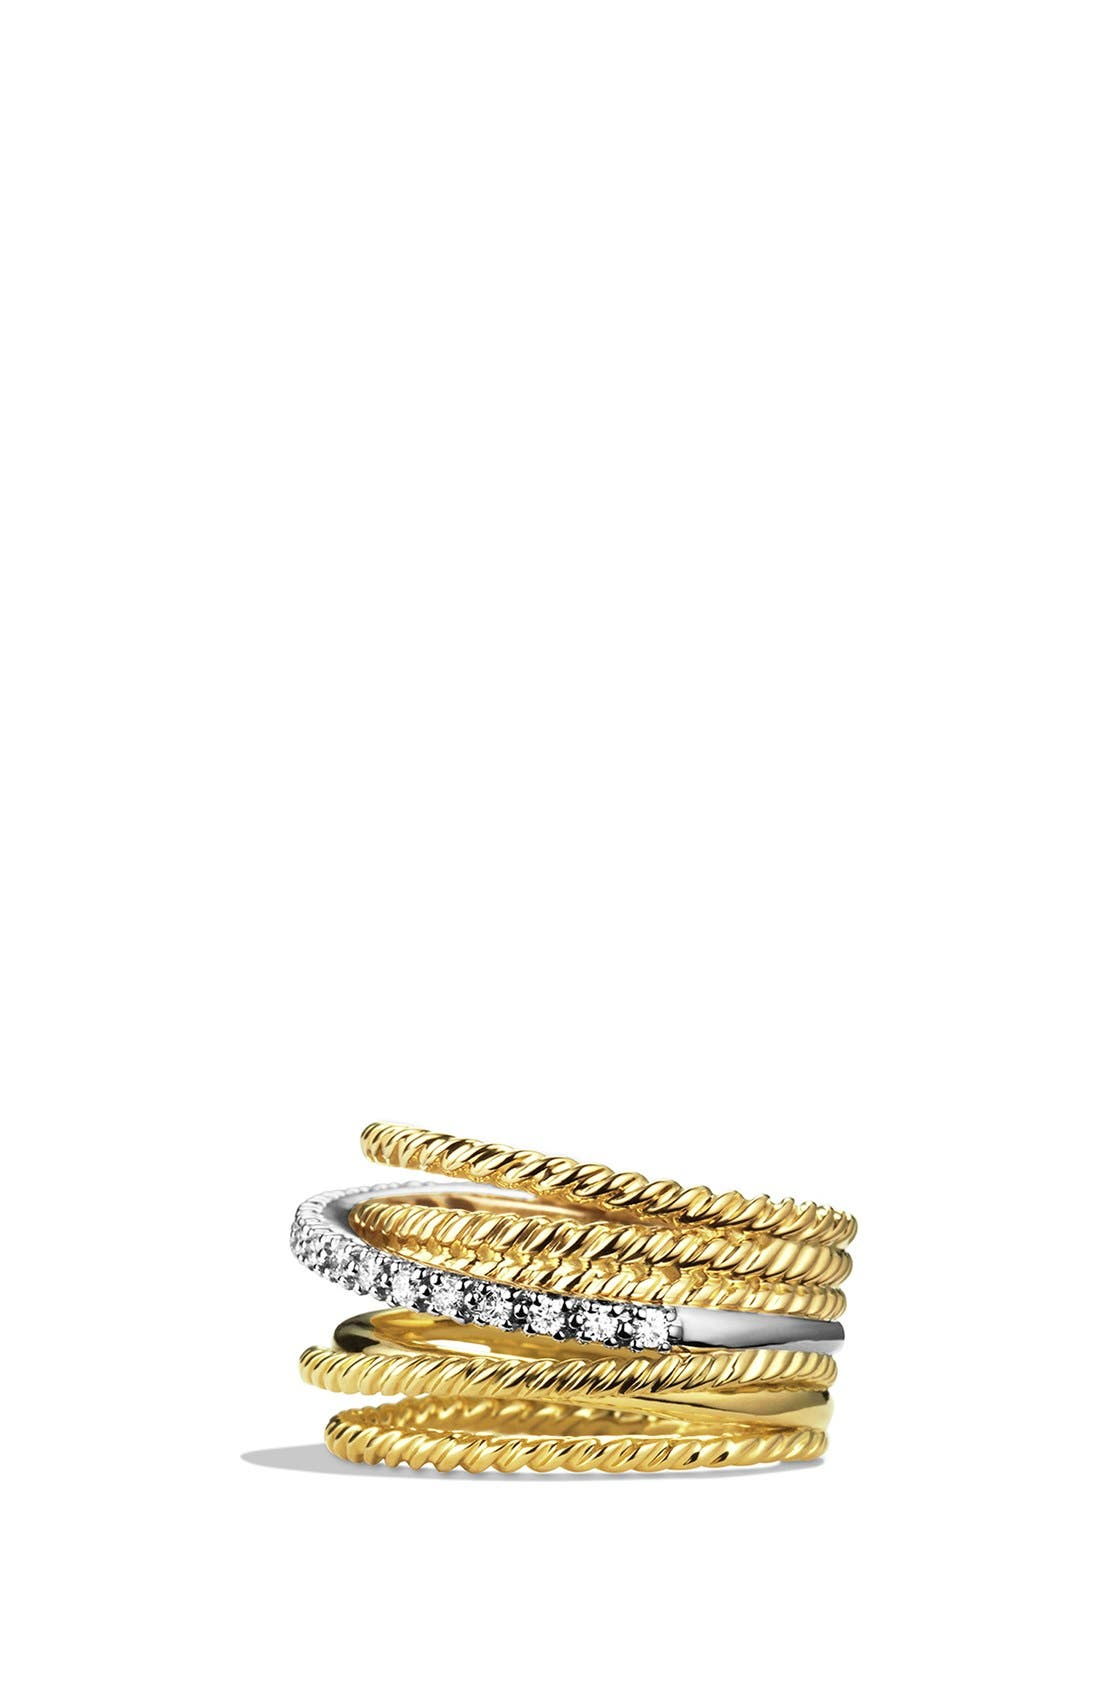 'DY Crossover' Ring with Diamonds in Gold,                             Alternate thumbnail 2, color,                             Diamond